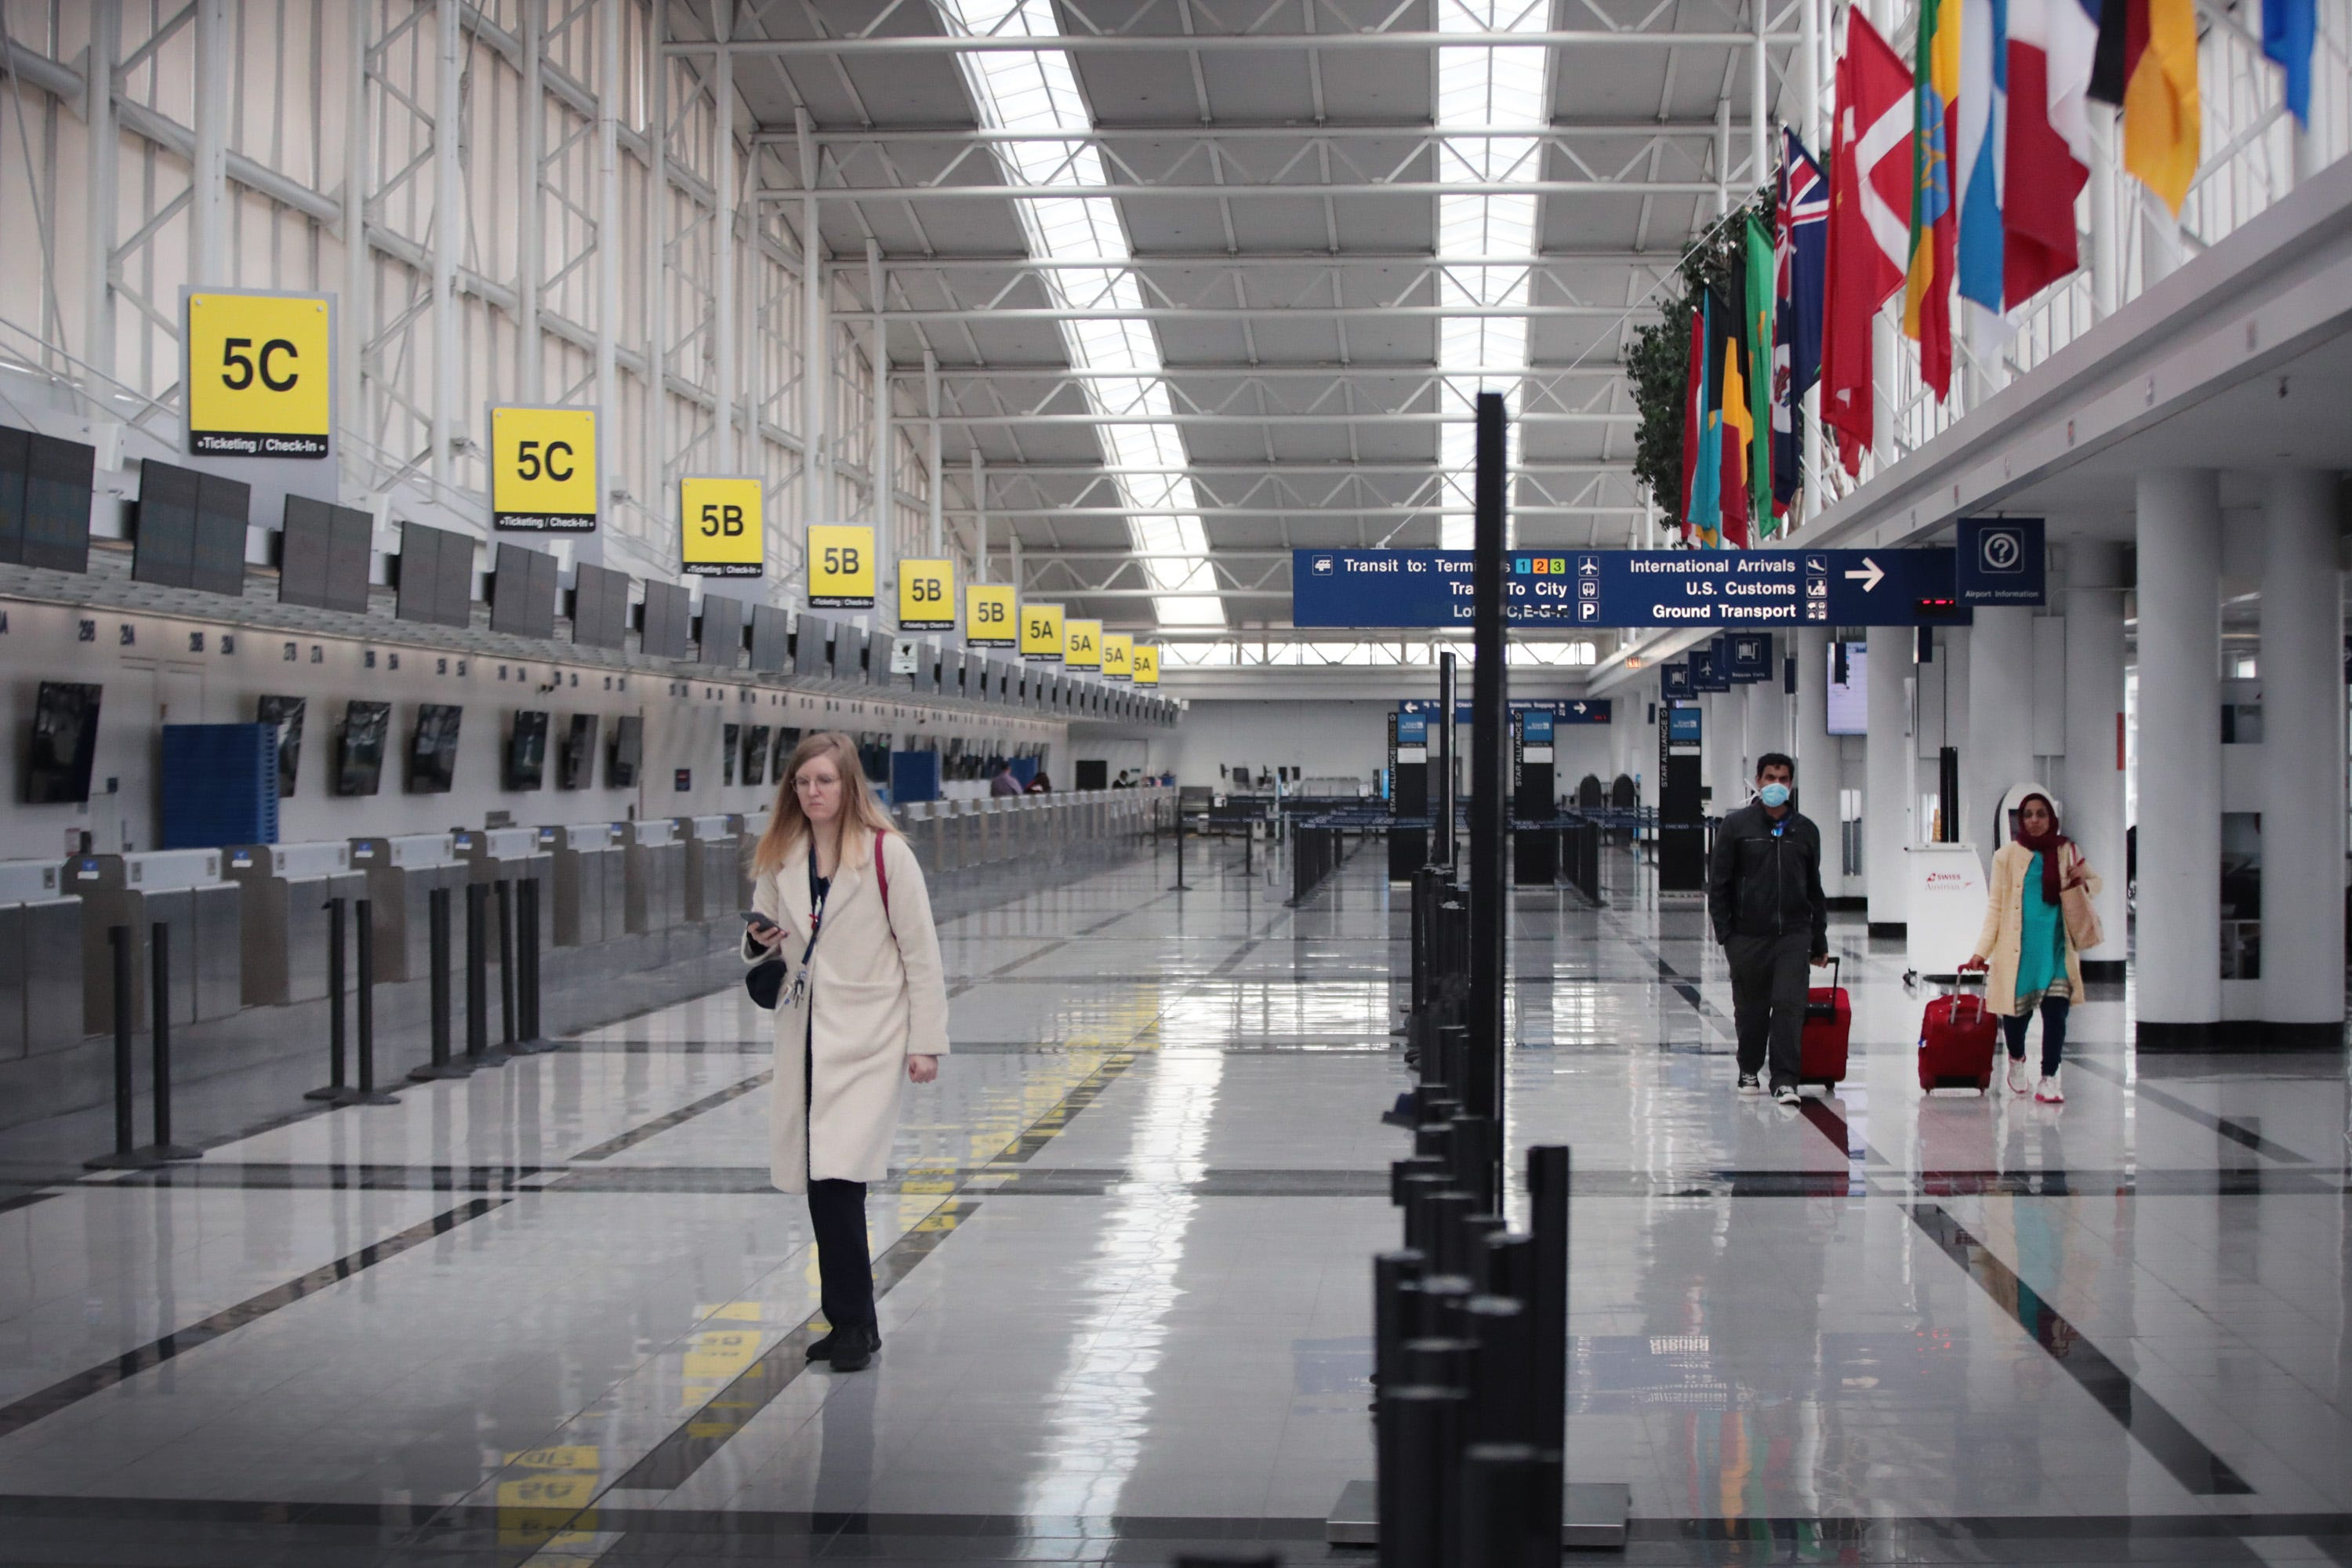 Chicago O'Hare Airport's international terminal is nearly devoid of travelers March 12, 2020, one day after President Donald Trump announced a 30-day travel ban for European travelers coming into the U.S. The move was an attempt to stem the proliferation of the COVID-19 pandemic.